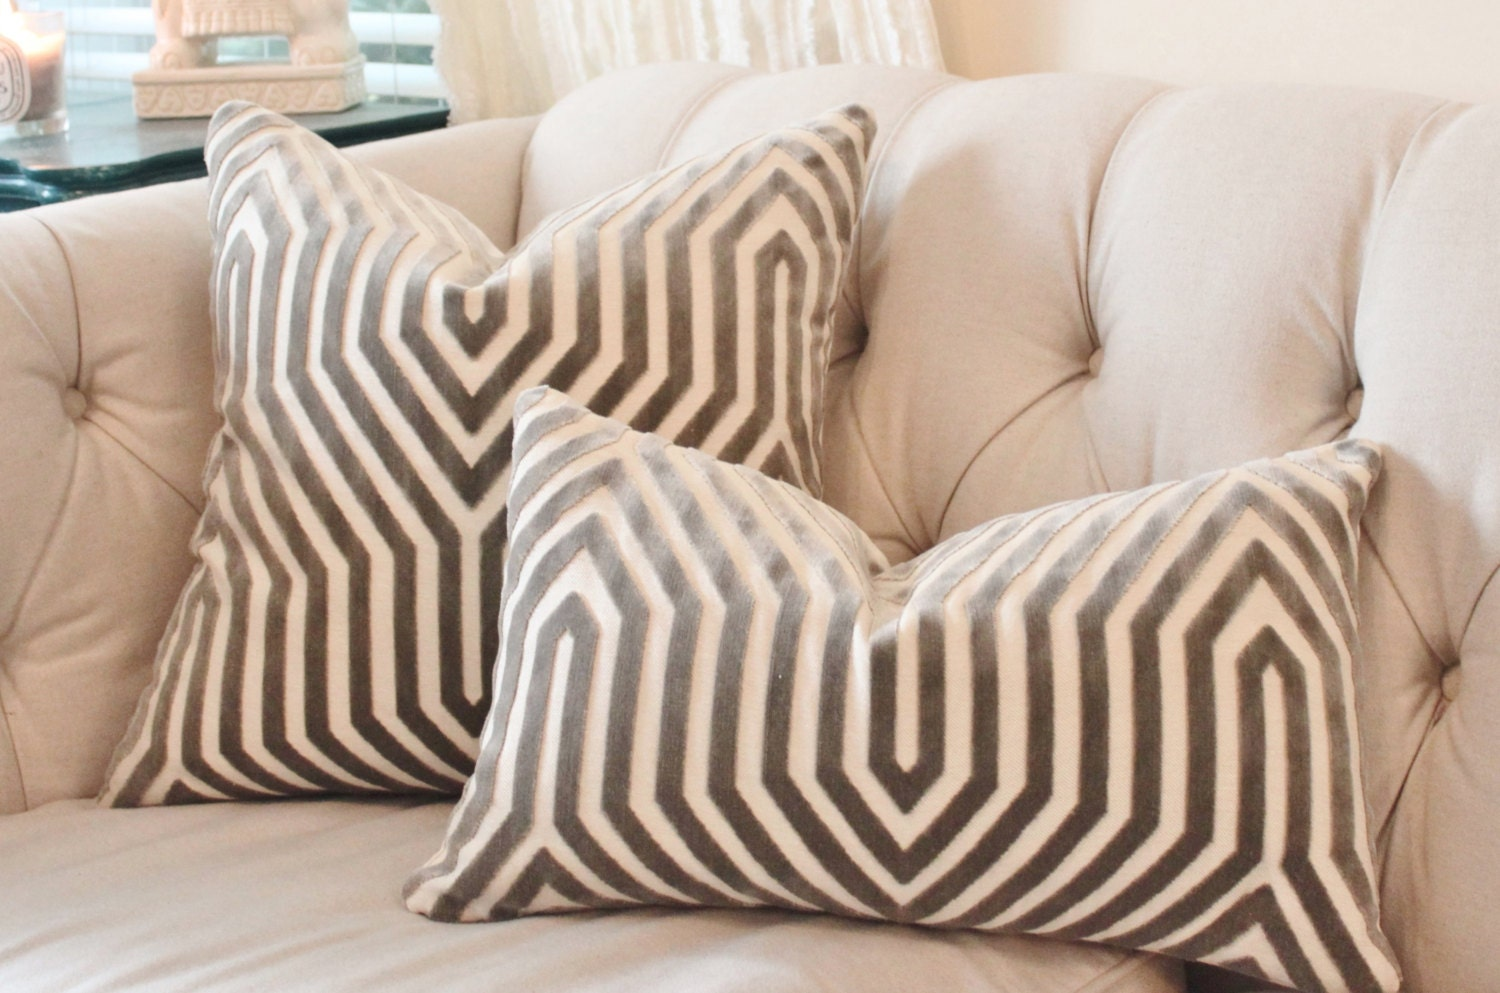 designer geometric pillow mary mcdonald gray pillow cover - 🔎zoom